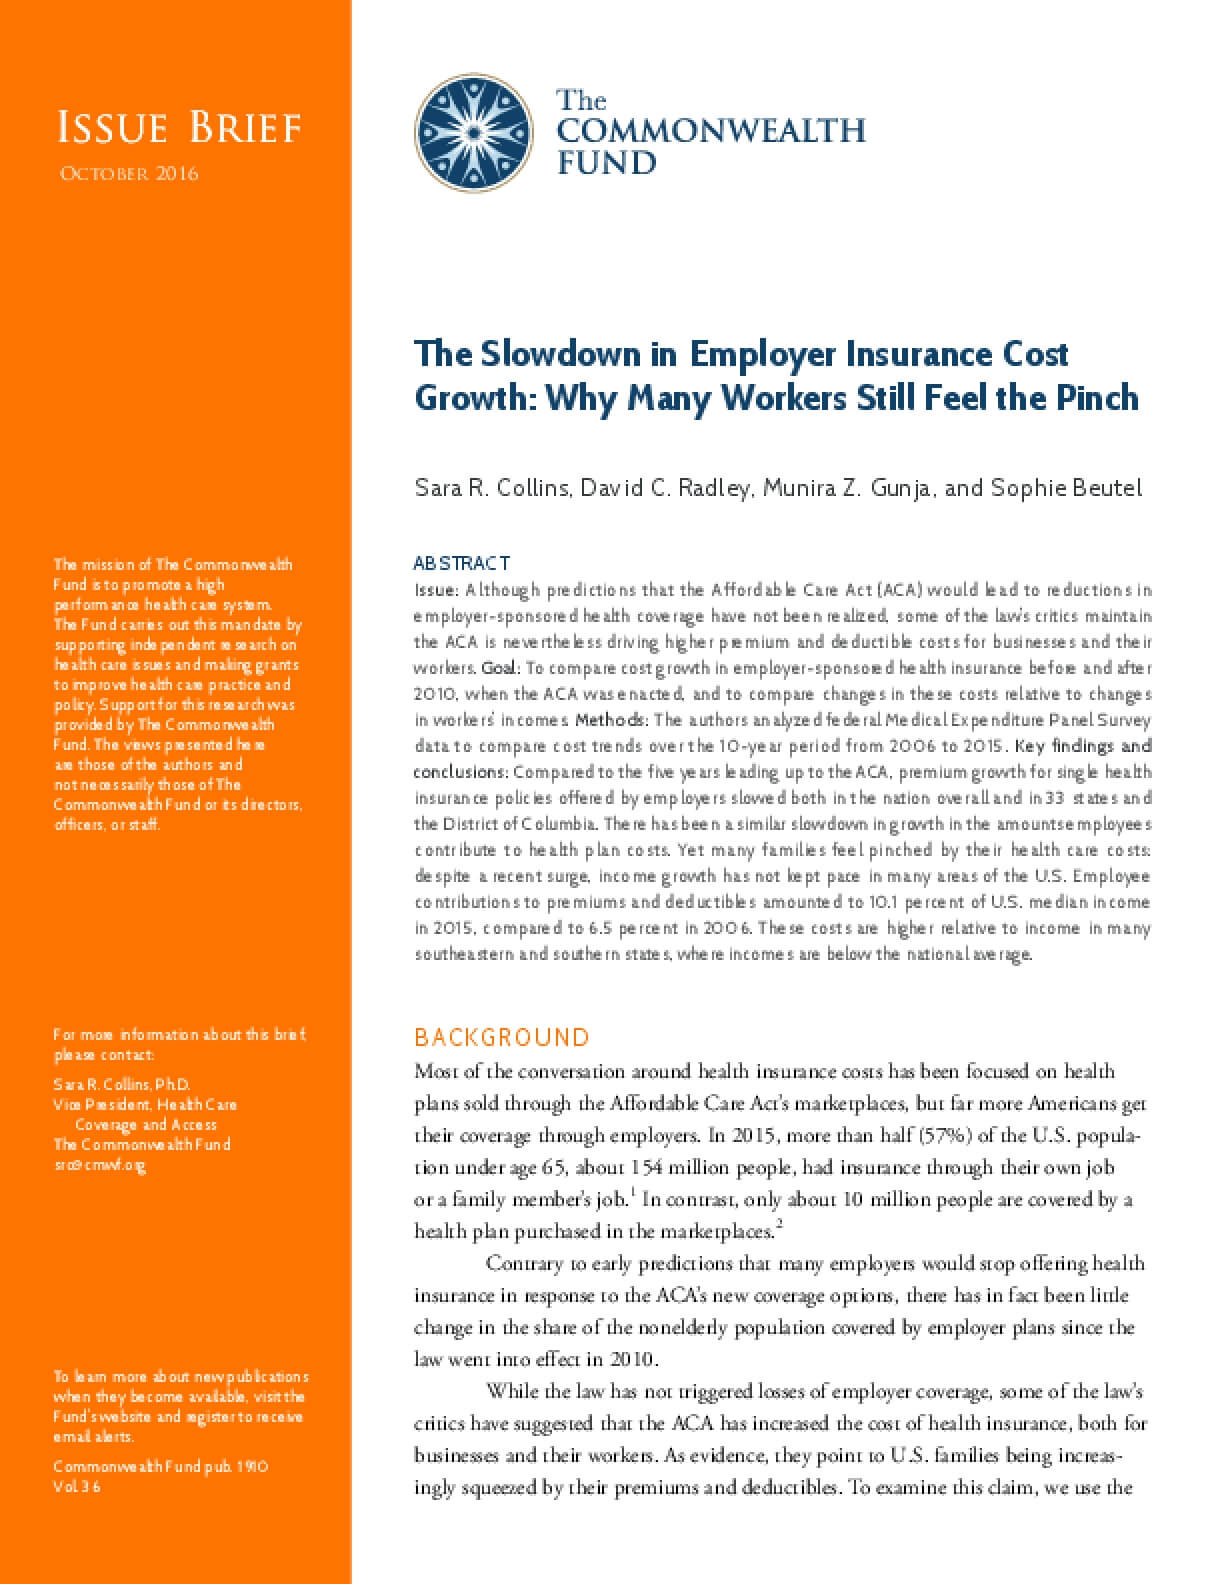 The Slowdown in Employer Insurance Cost Growth: Why Many Workers Still Feel the Pinch